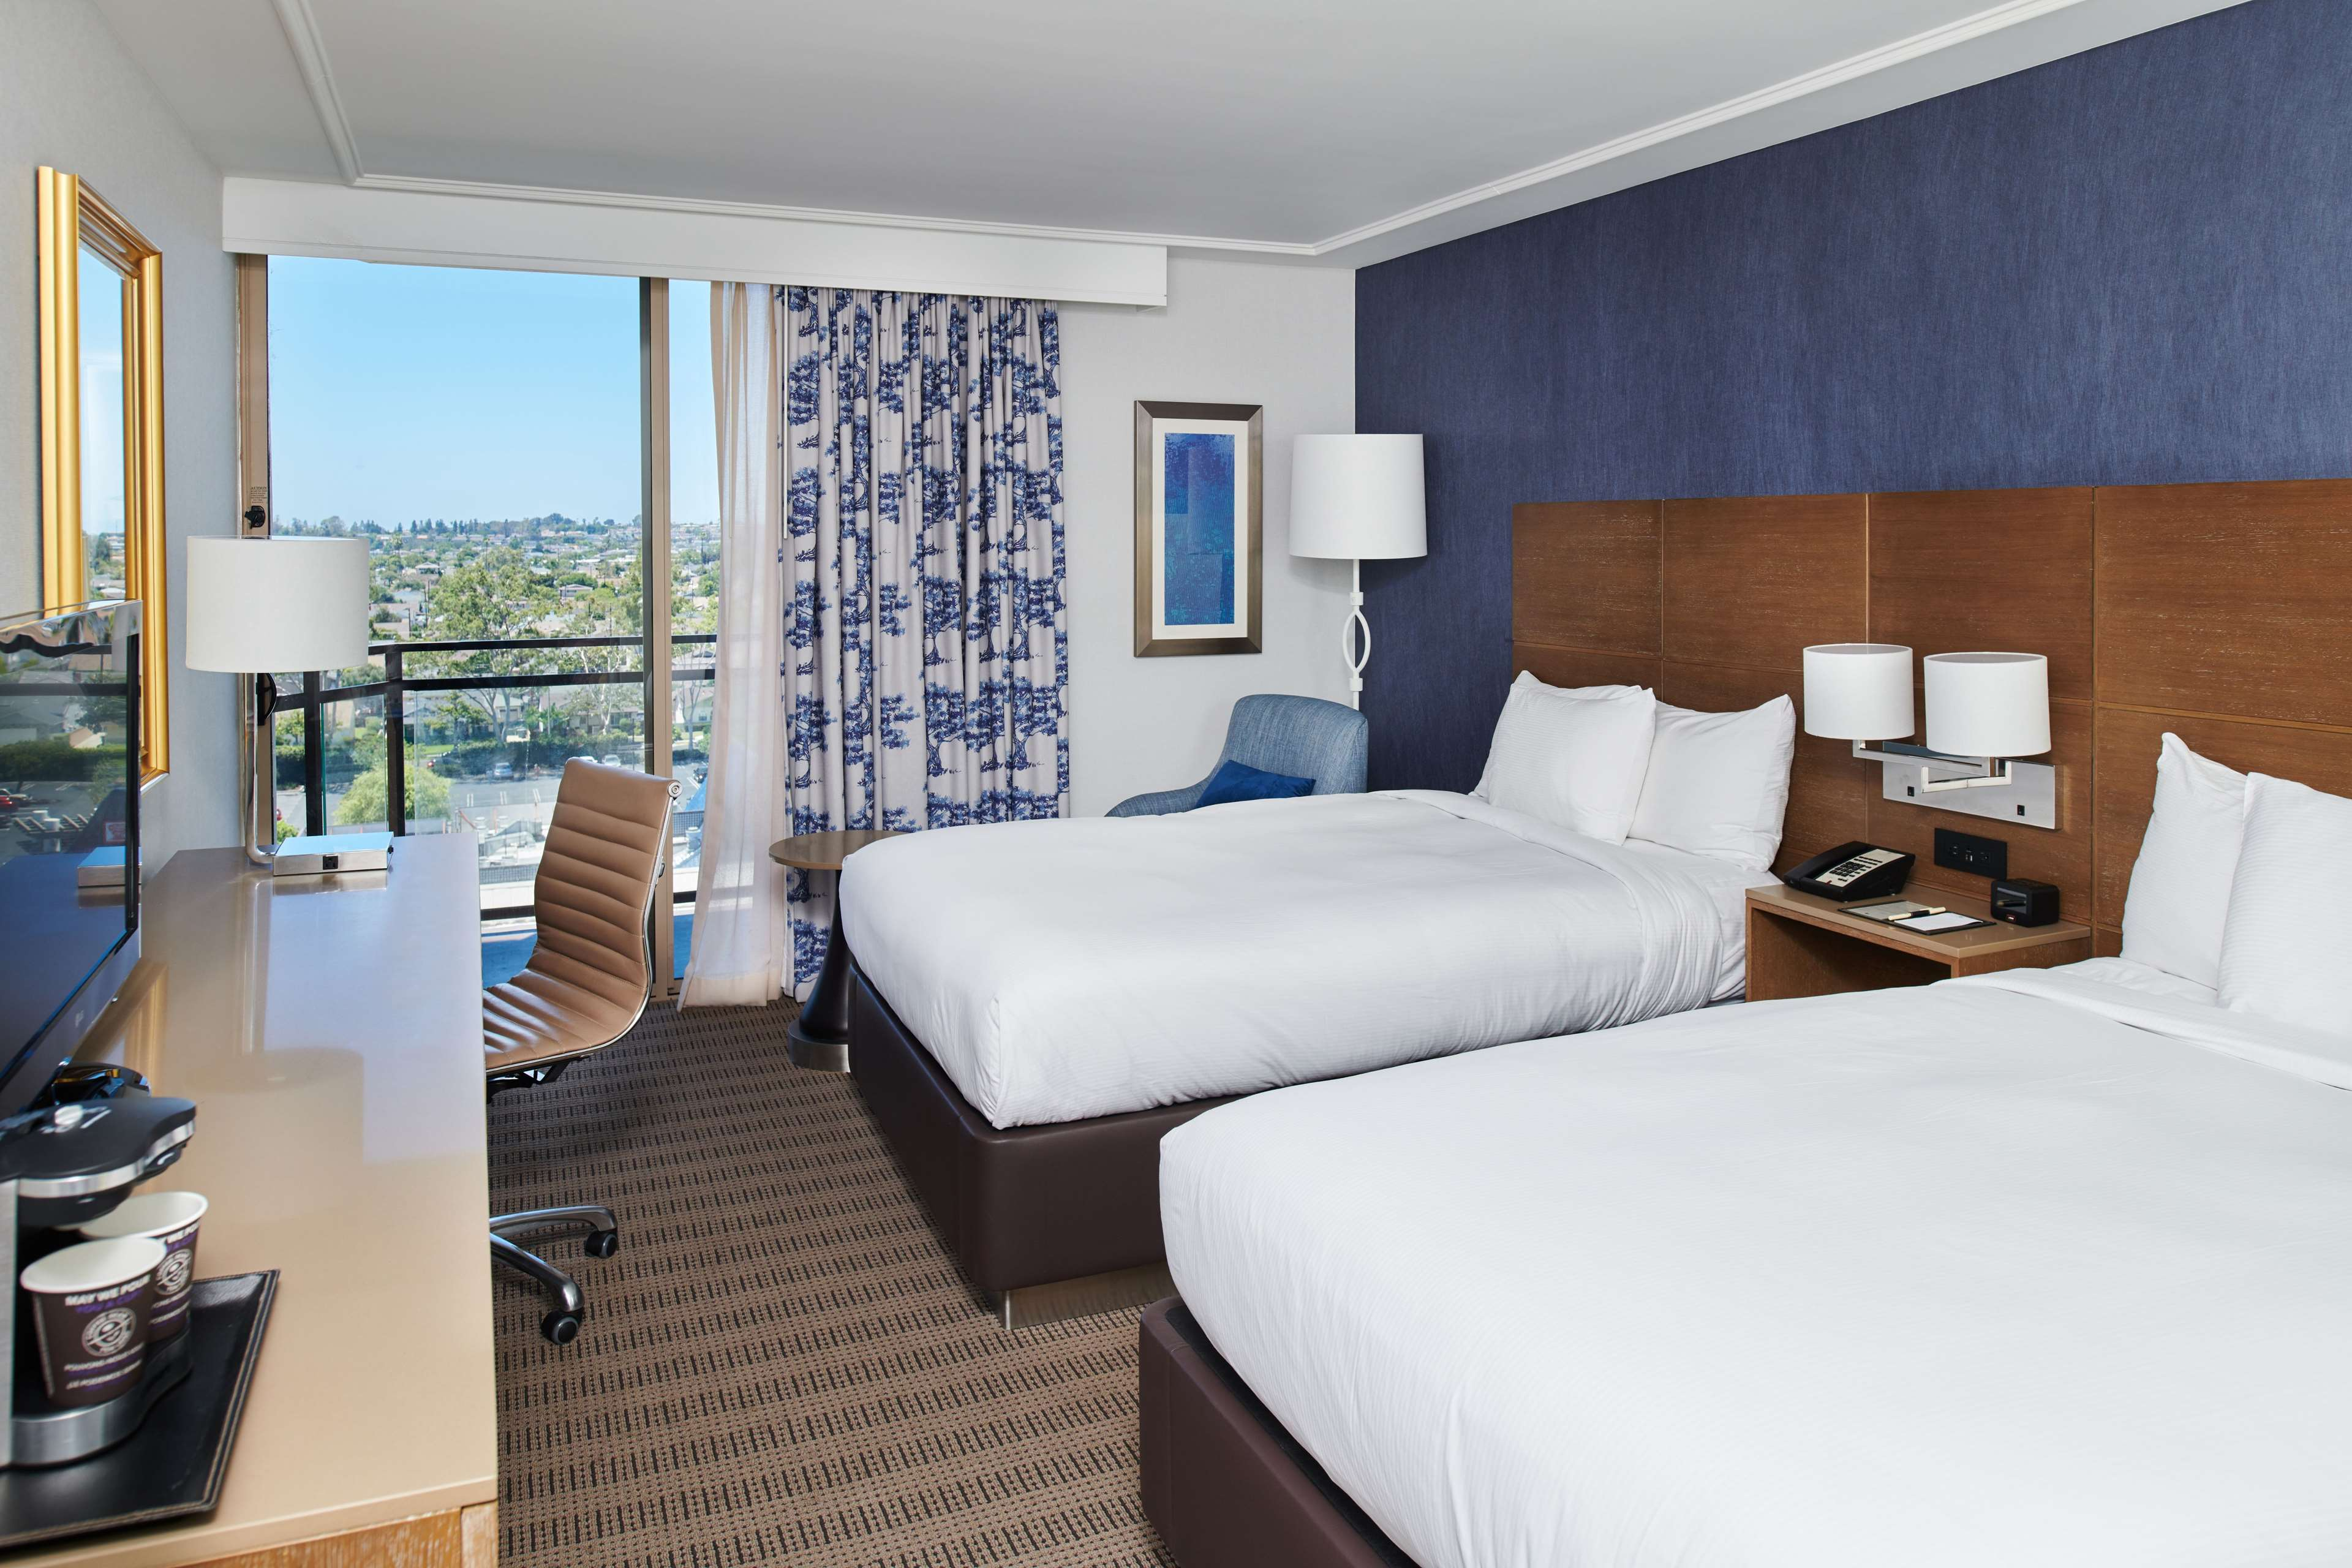 DoubleTree by Hilton Hotel Torrance - South Bay image 11